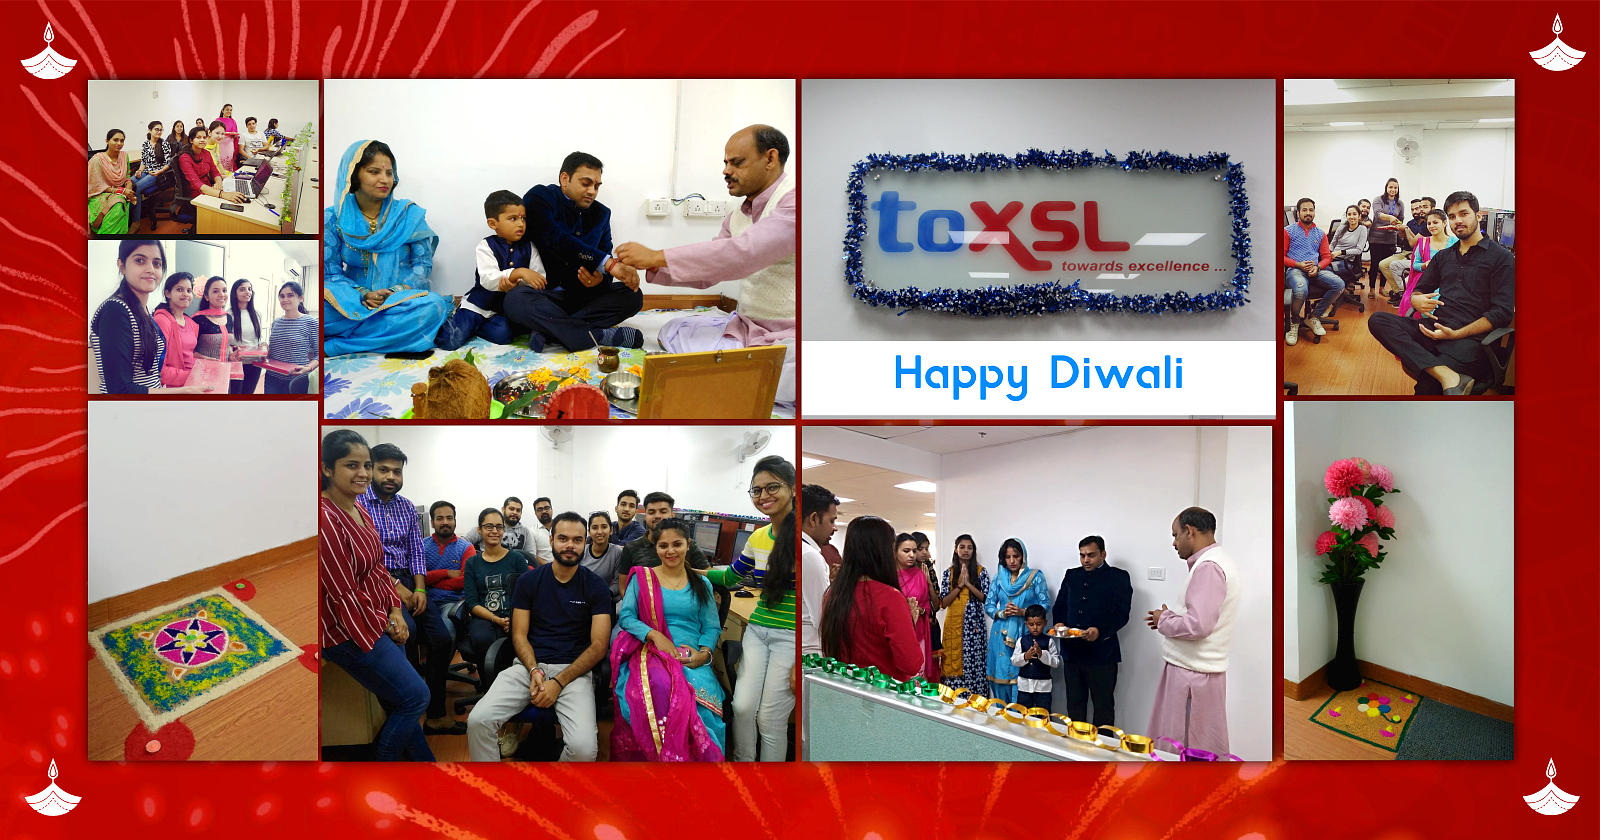 Diwali Celebrations at ToXSL Technologies 2018